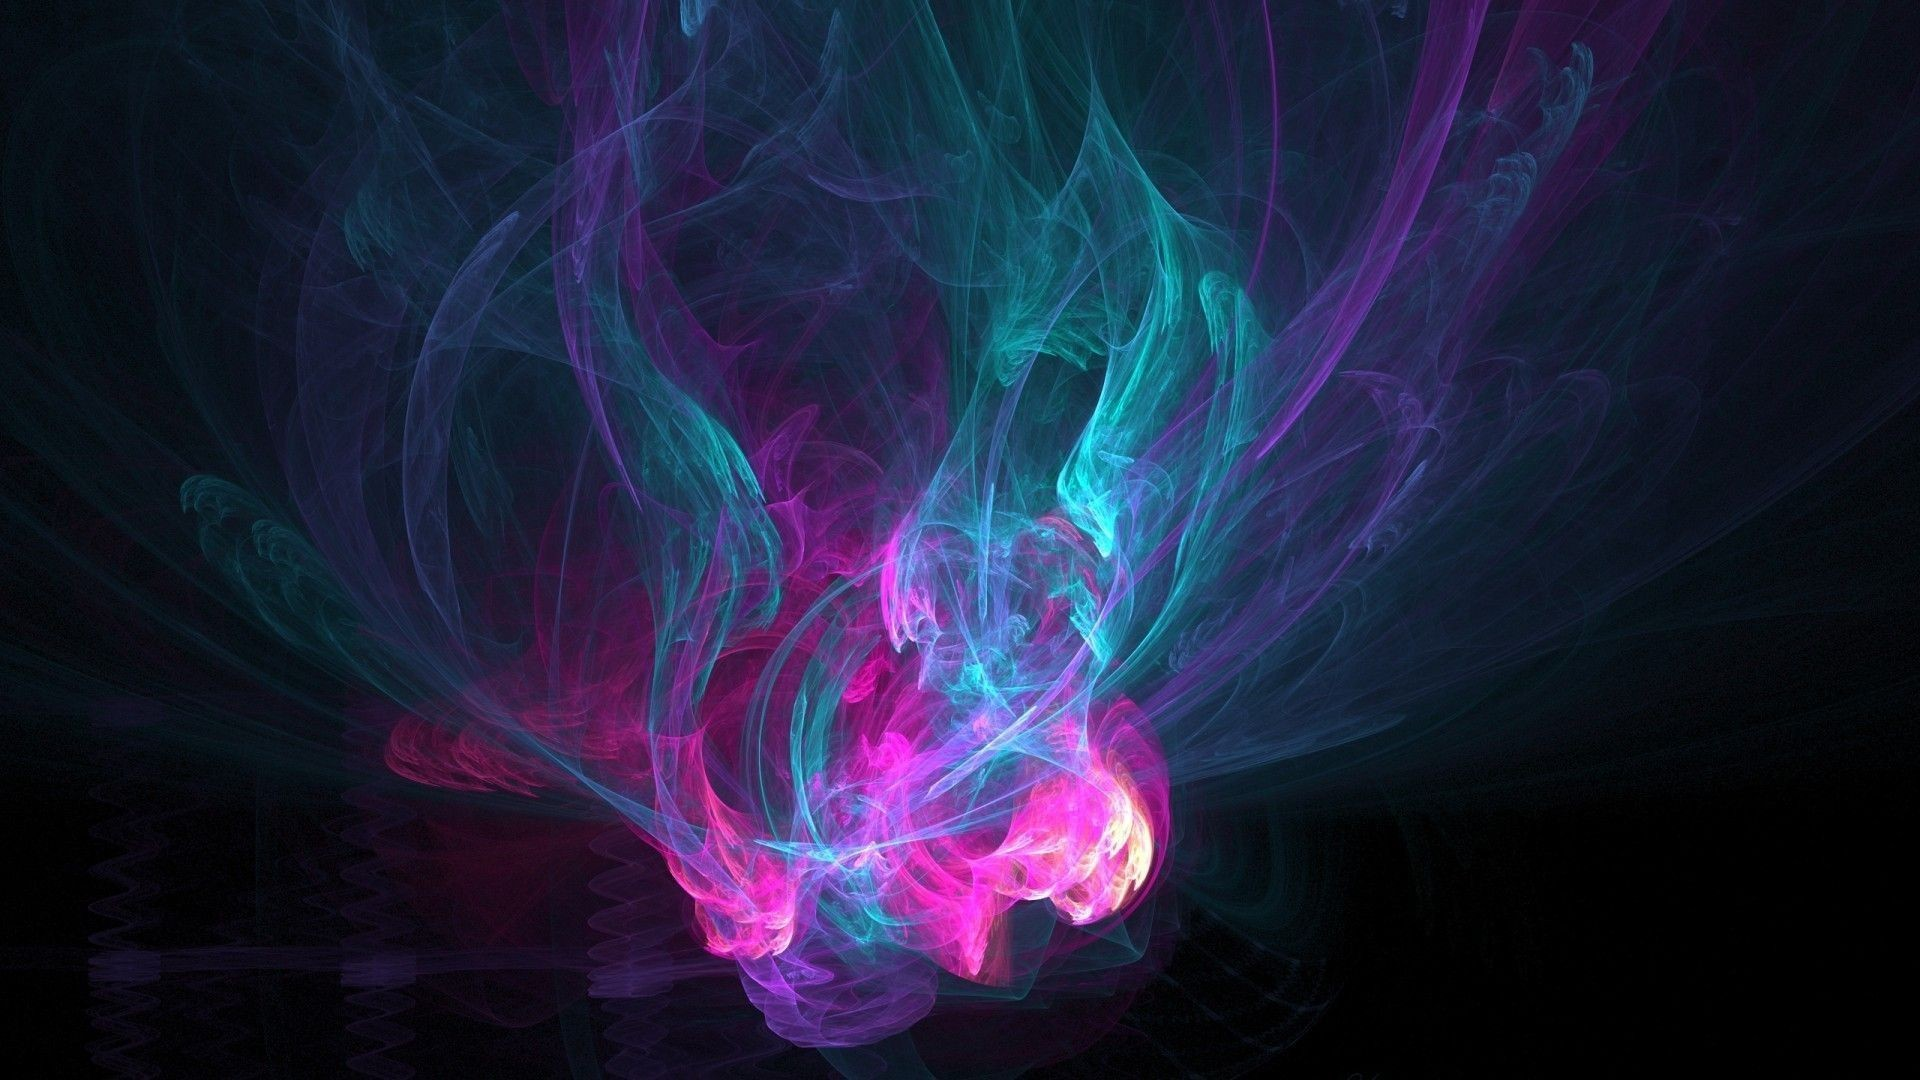 3d Desktop Live Wallpaper Magic Smoke Live Wallpaper 67 Images